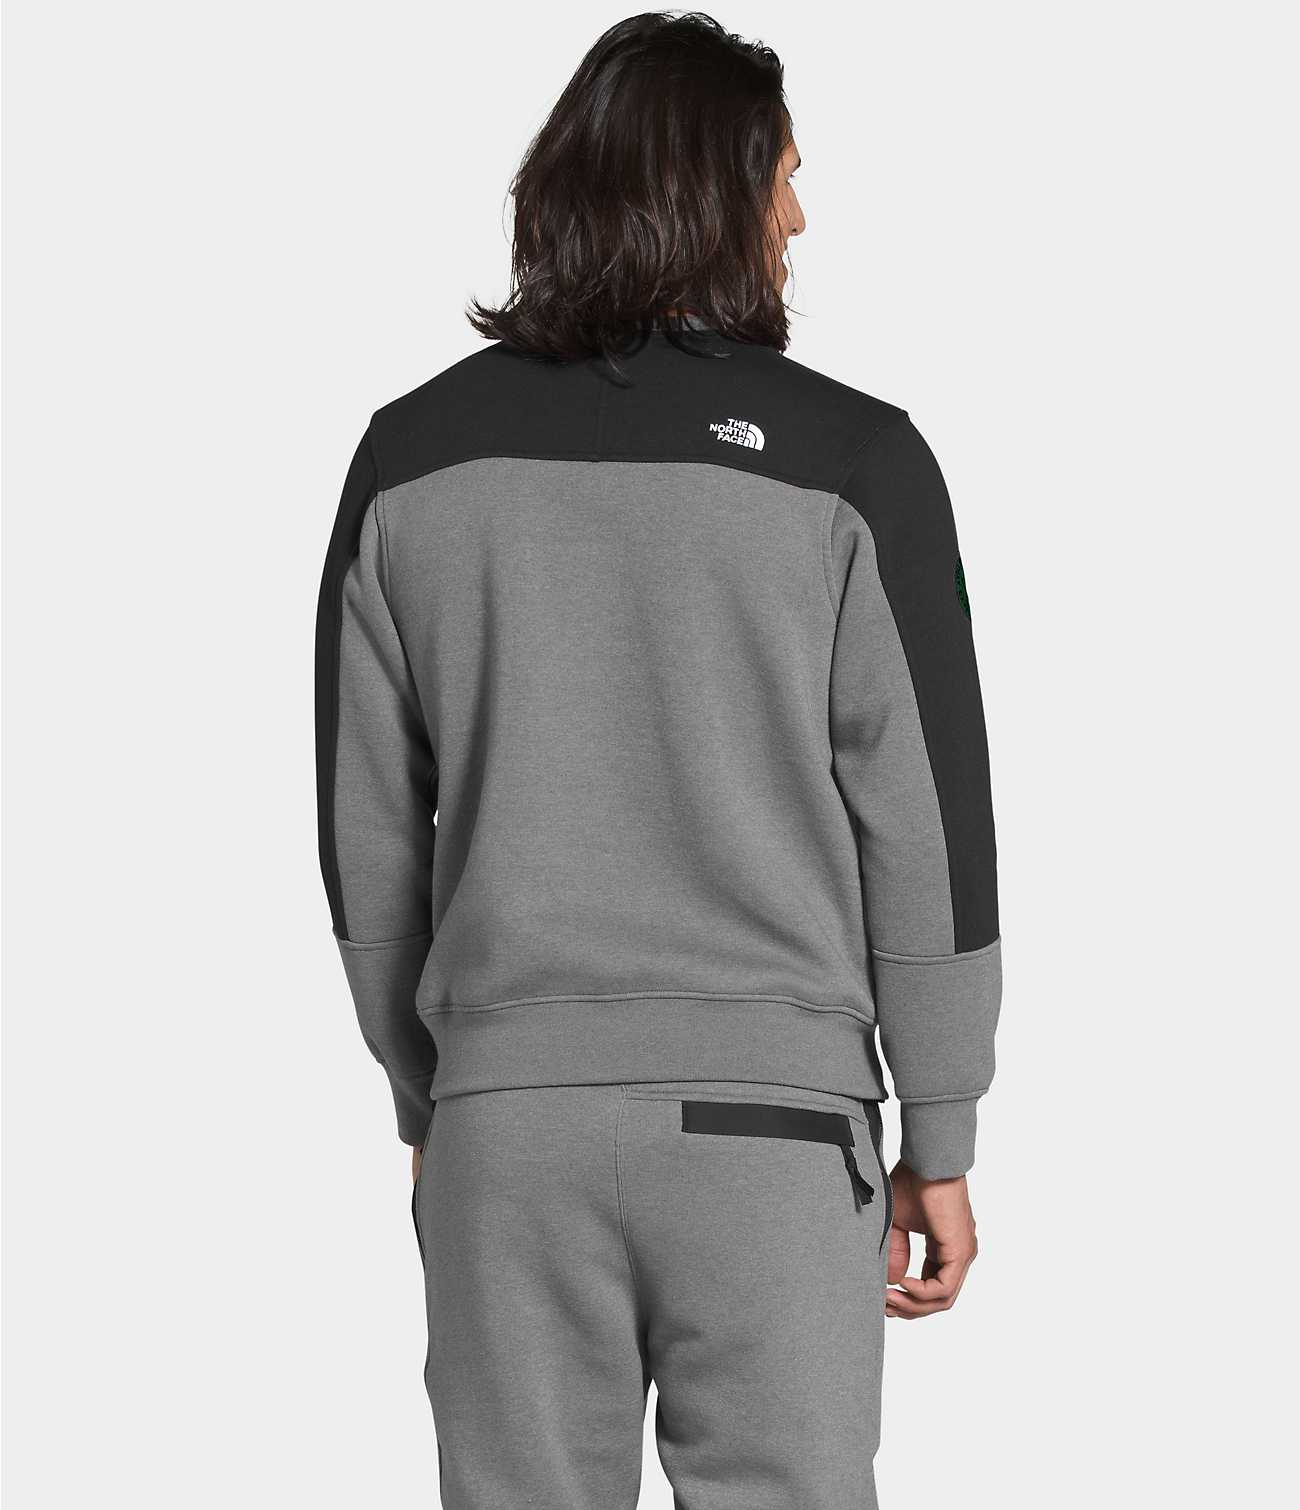 THE NORTH FACE M'S HOODIES GRAPHIC COLLECTION PULLOVER